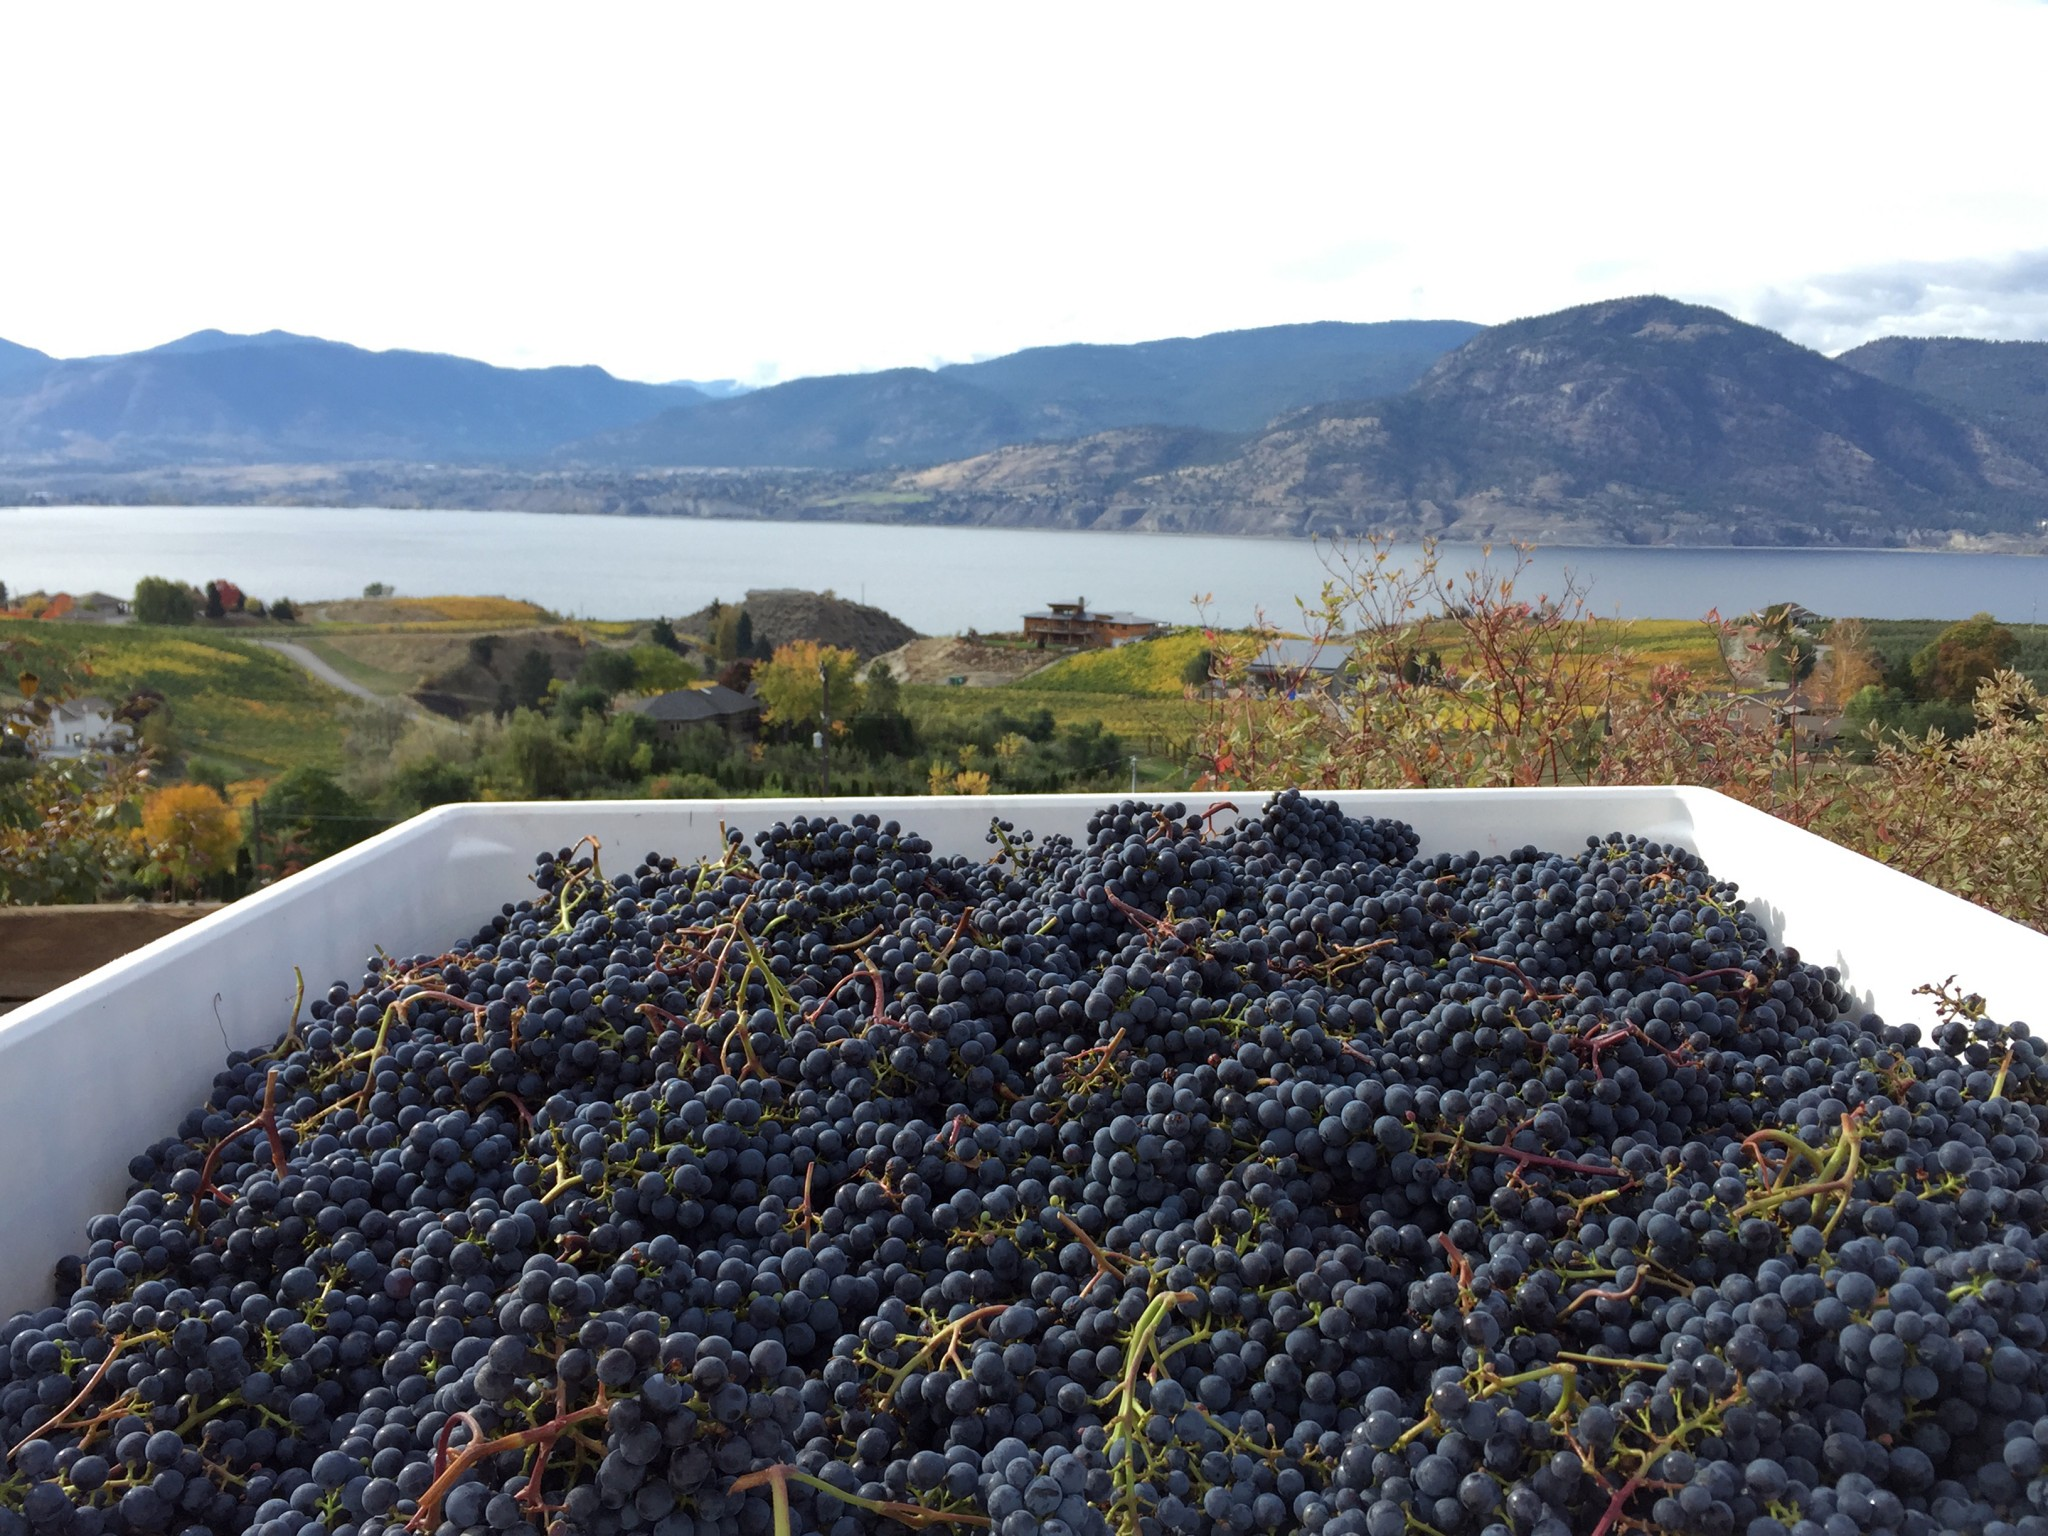 Harvested BC grapes, ready to be pressed.